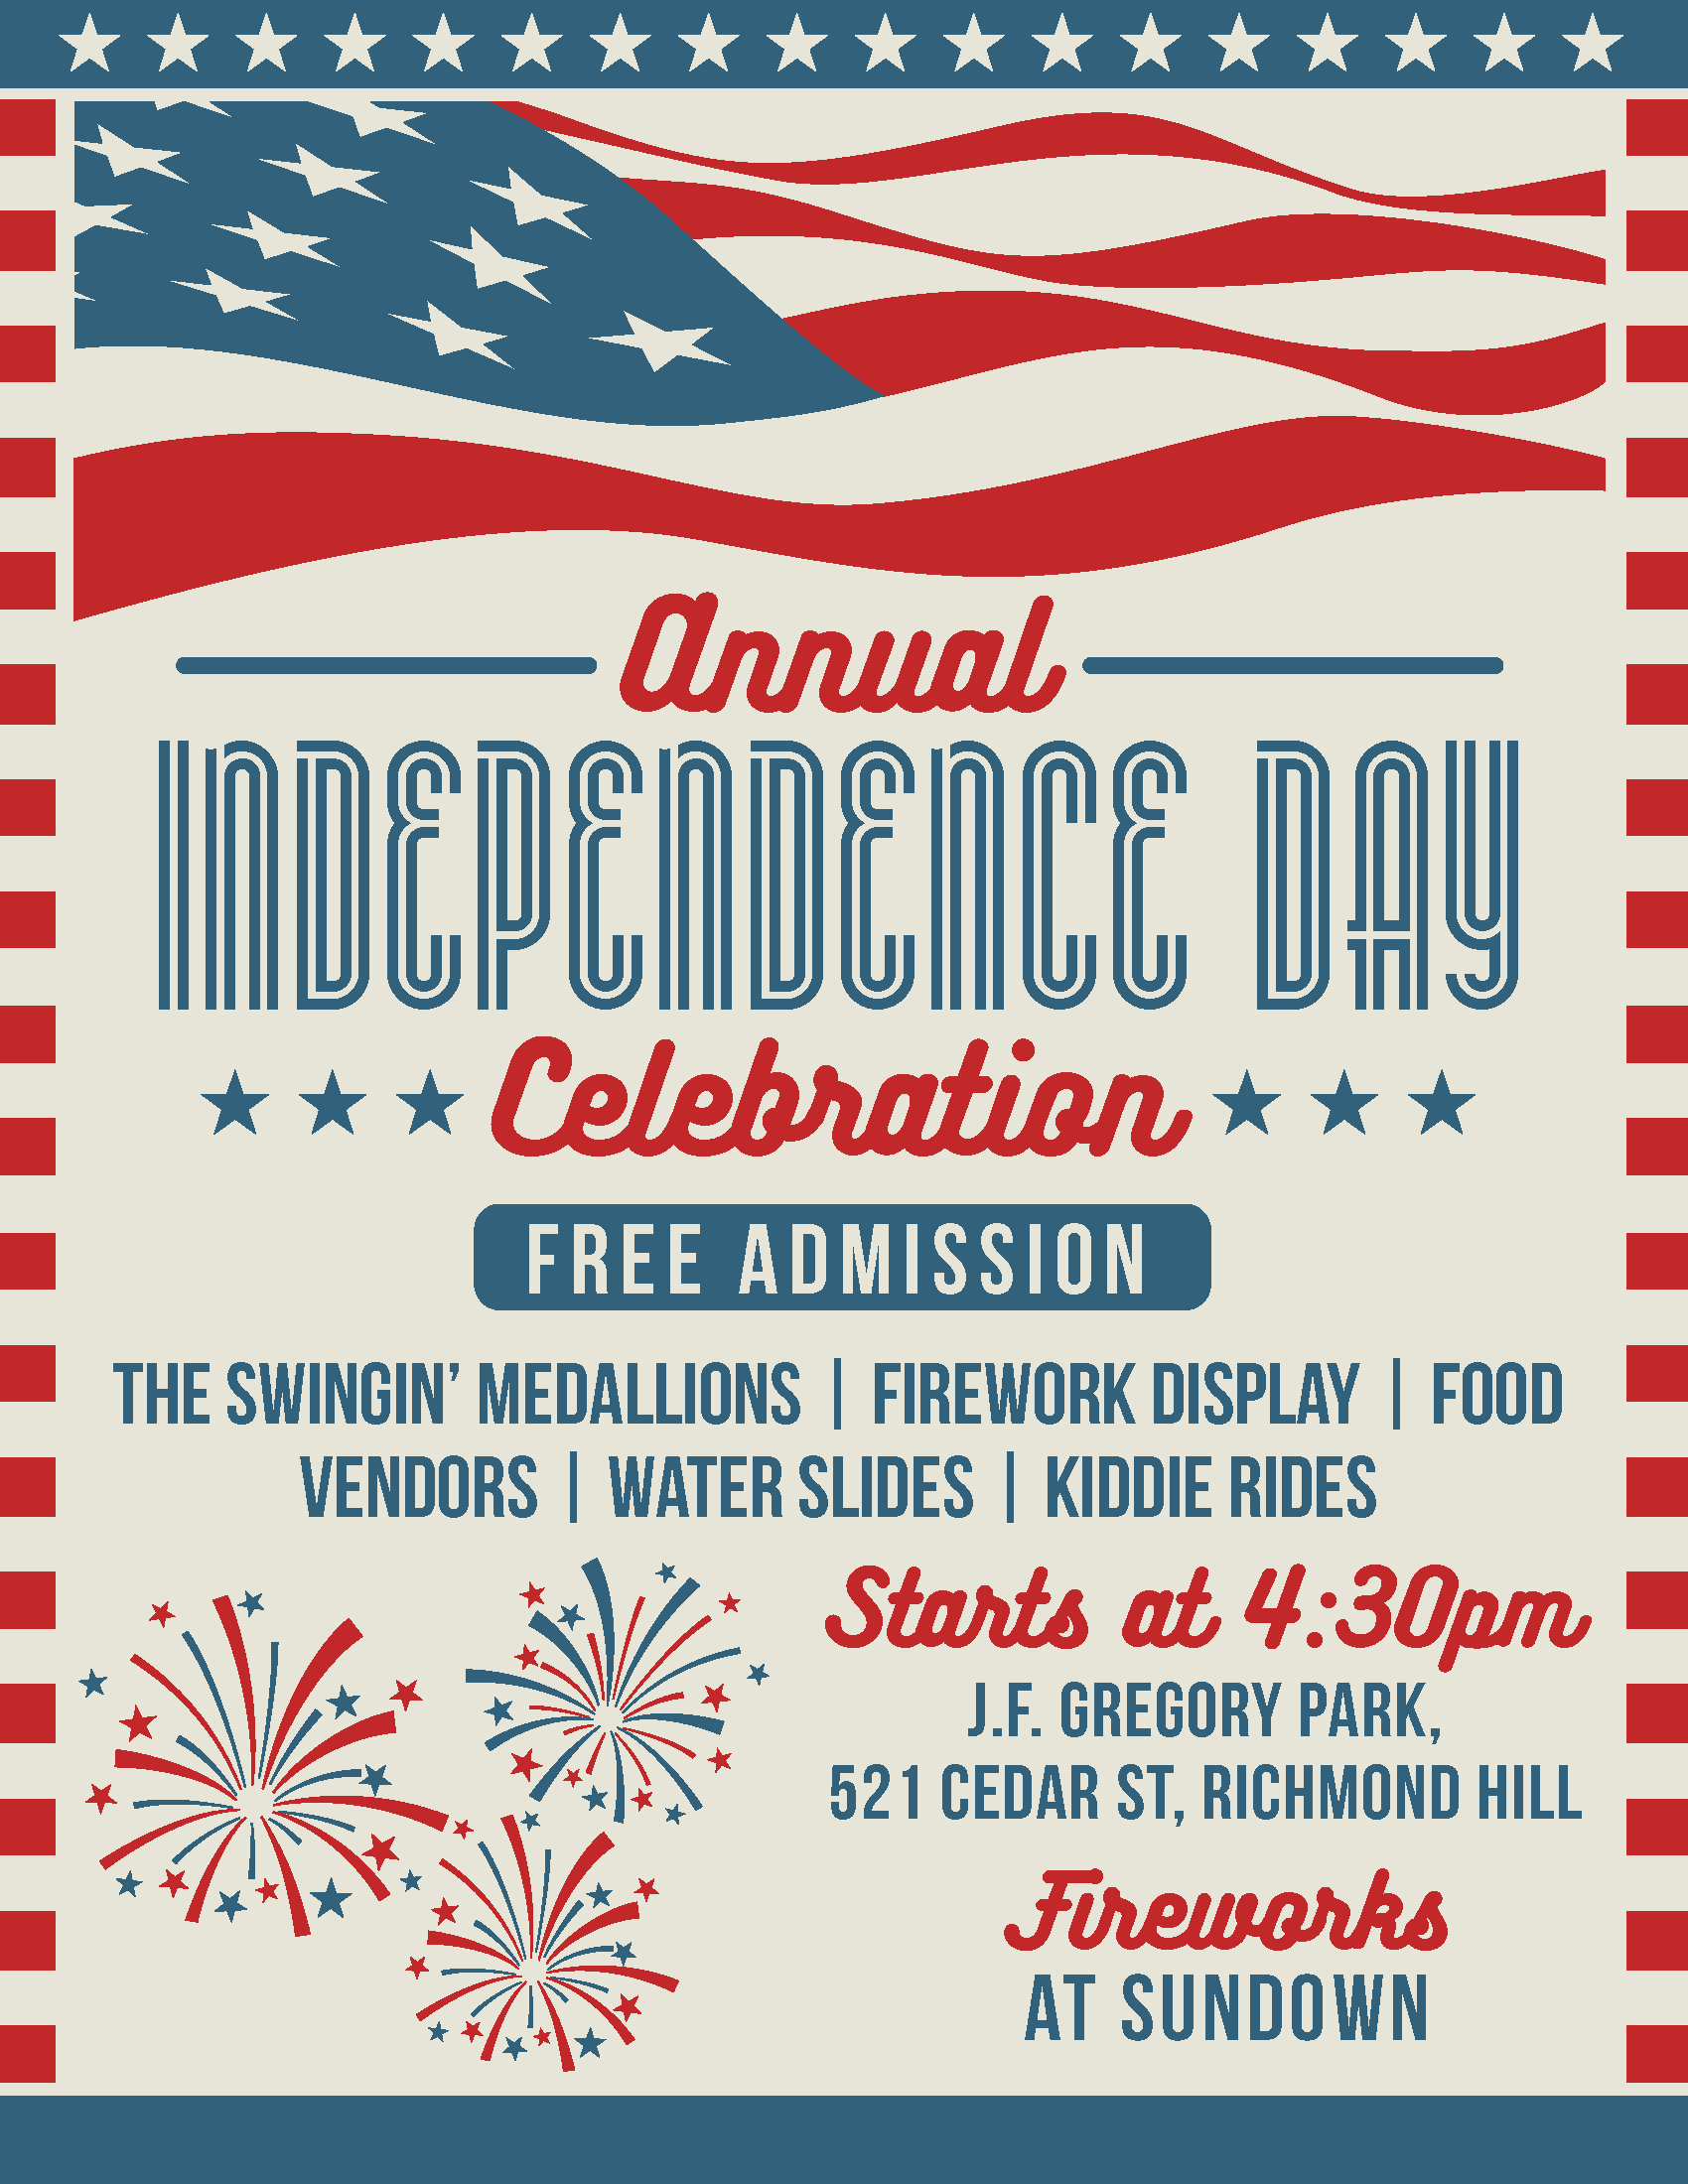 2021 Independence Day Celebration Flyer